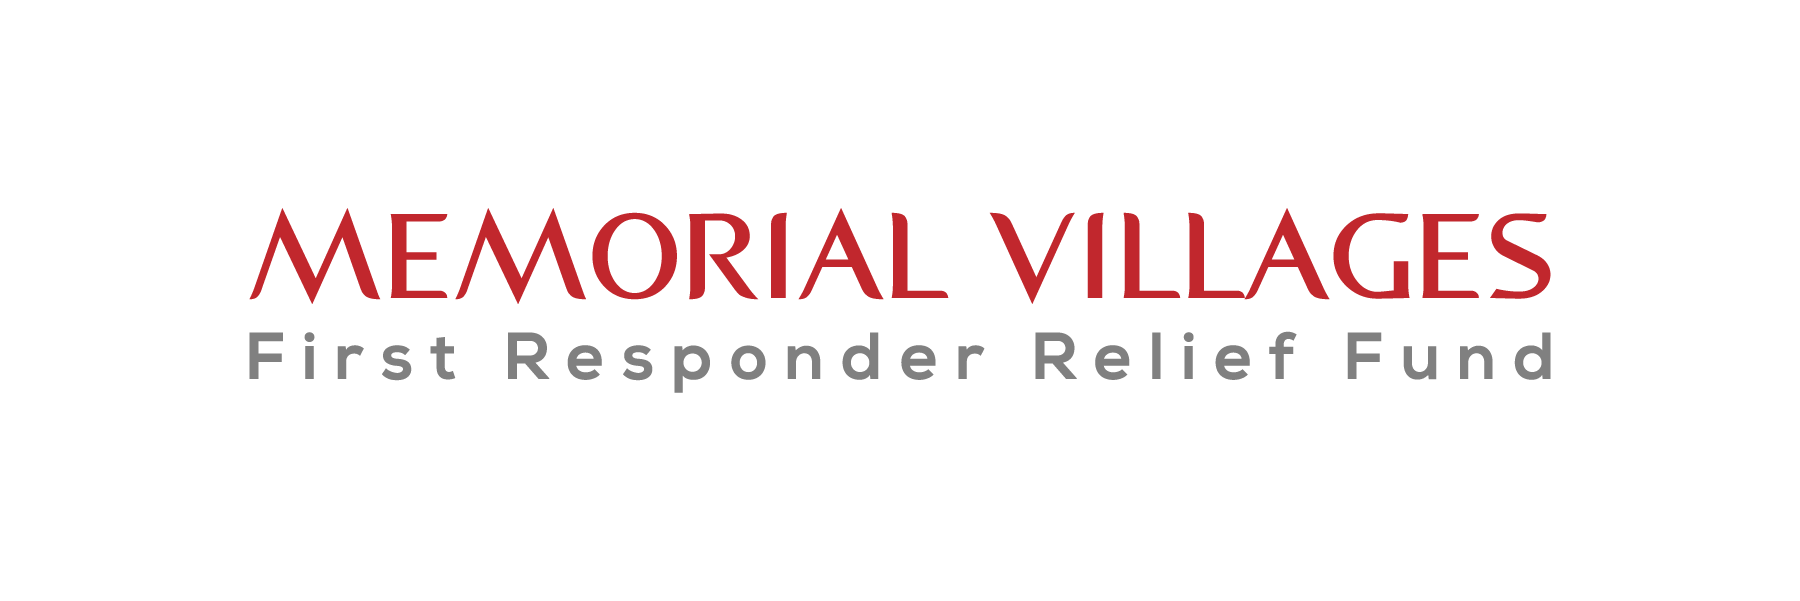 Memorial Villages First Responder Relief Fund